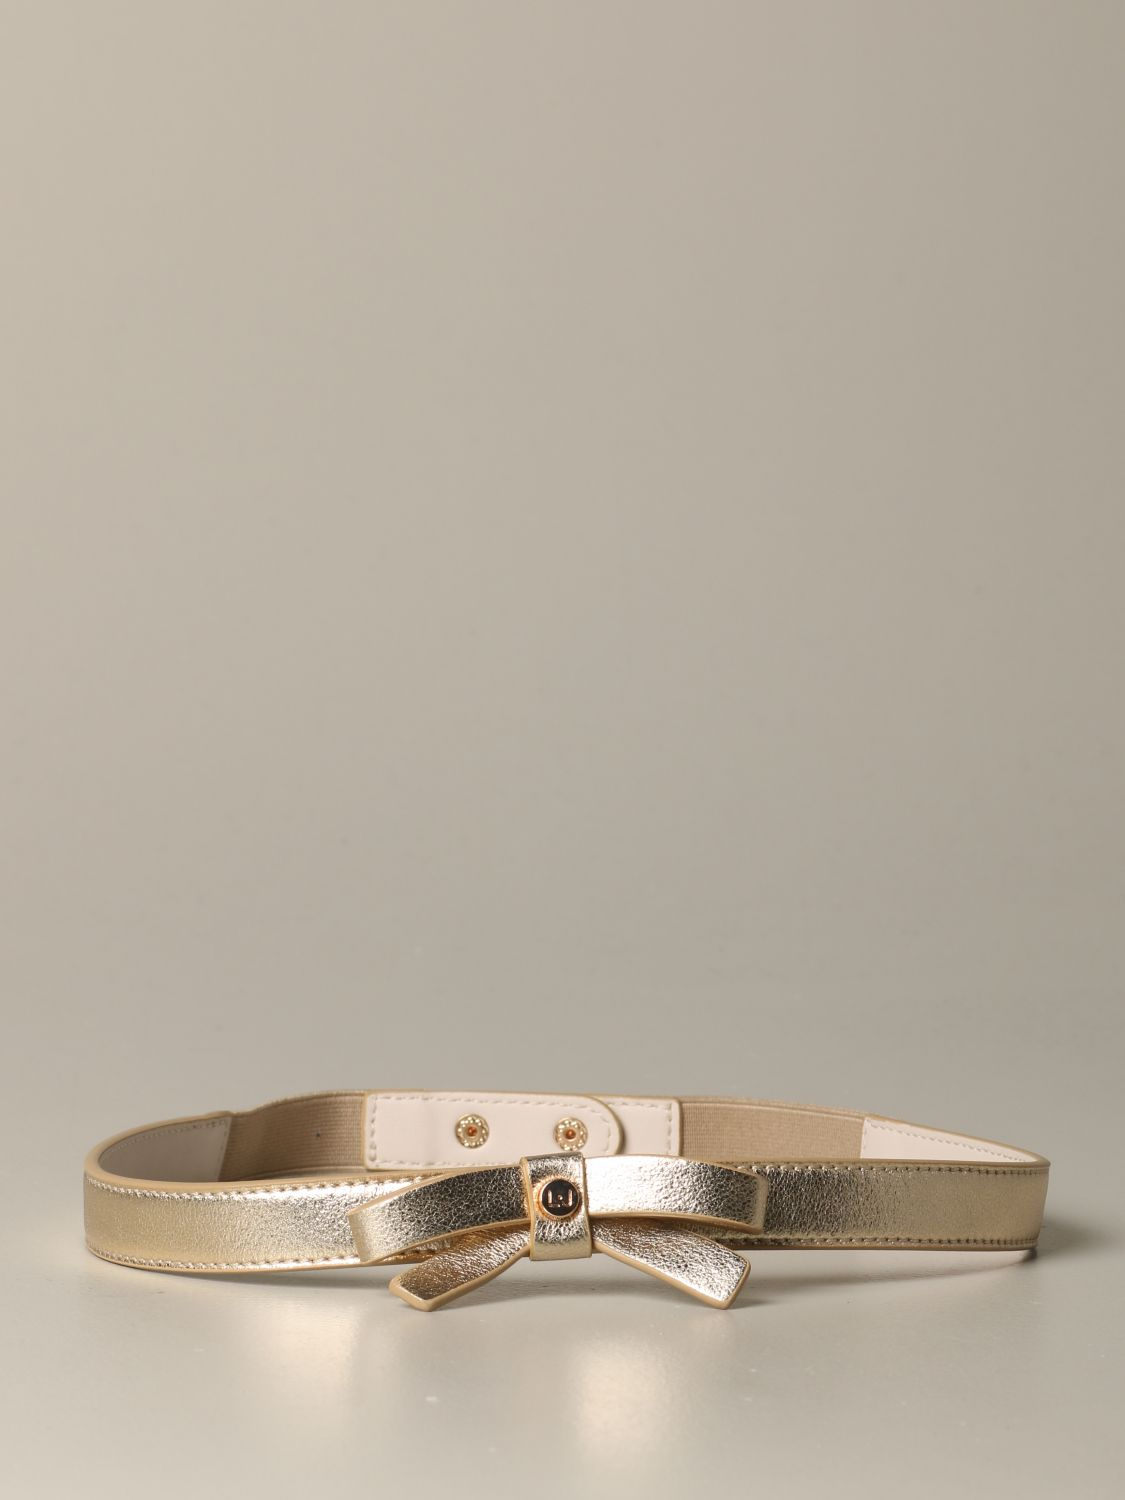 Liu Jo belt in laminated leather with bow gold 2